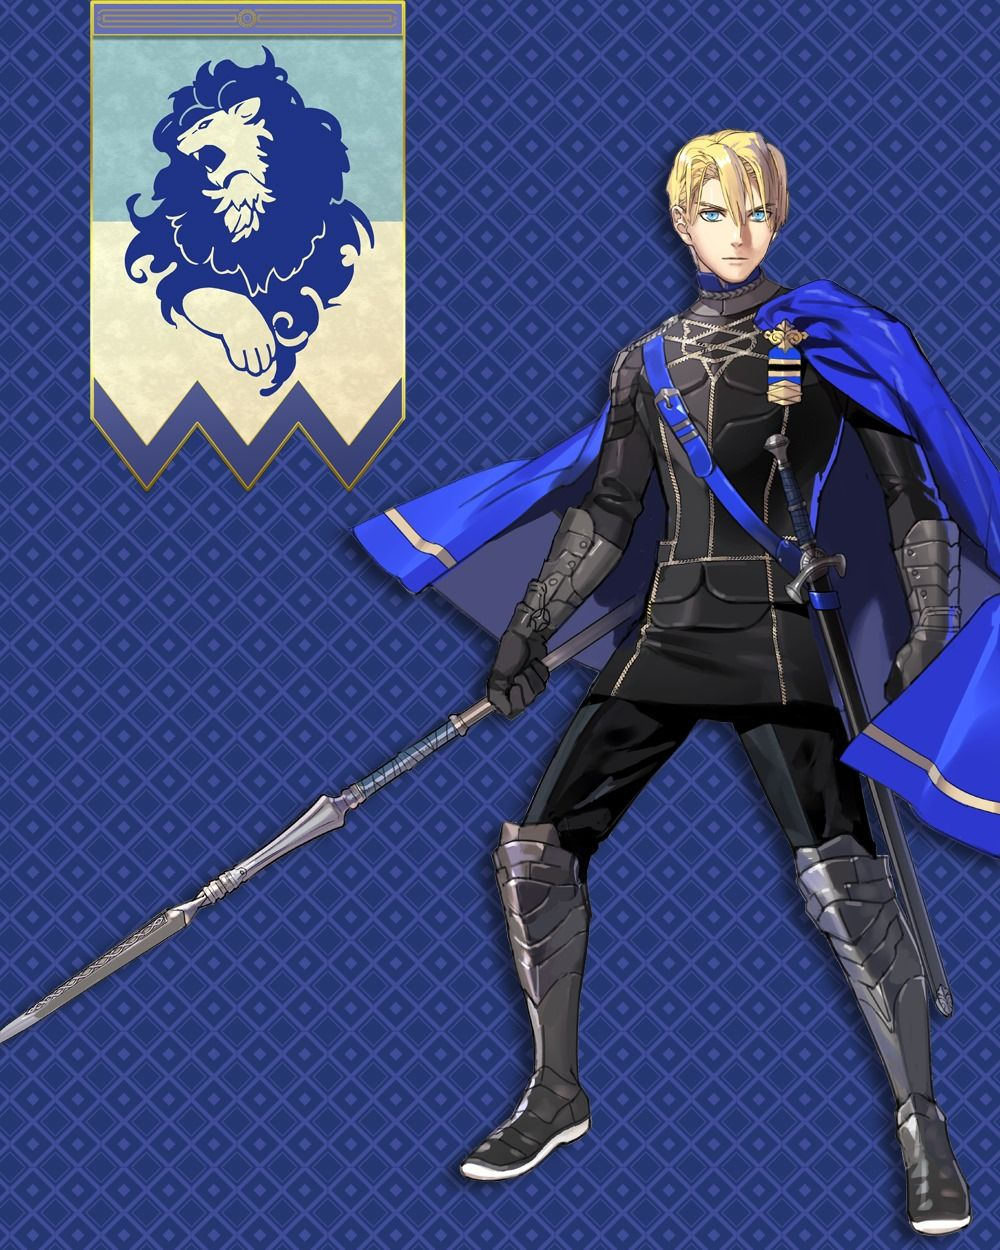 In Fire Emblem Three Houses Dimitri Is House Leader Of The Blue Lions And Next In Line To The Throne Fire Emblem Characters Fire Emblem Fire Emblem Wallpaper